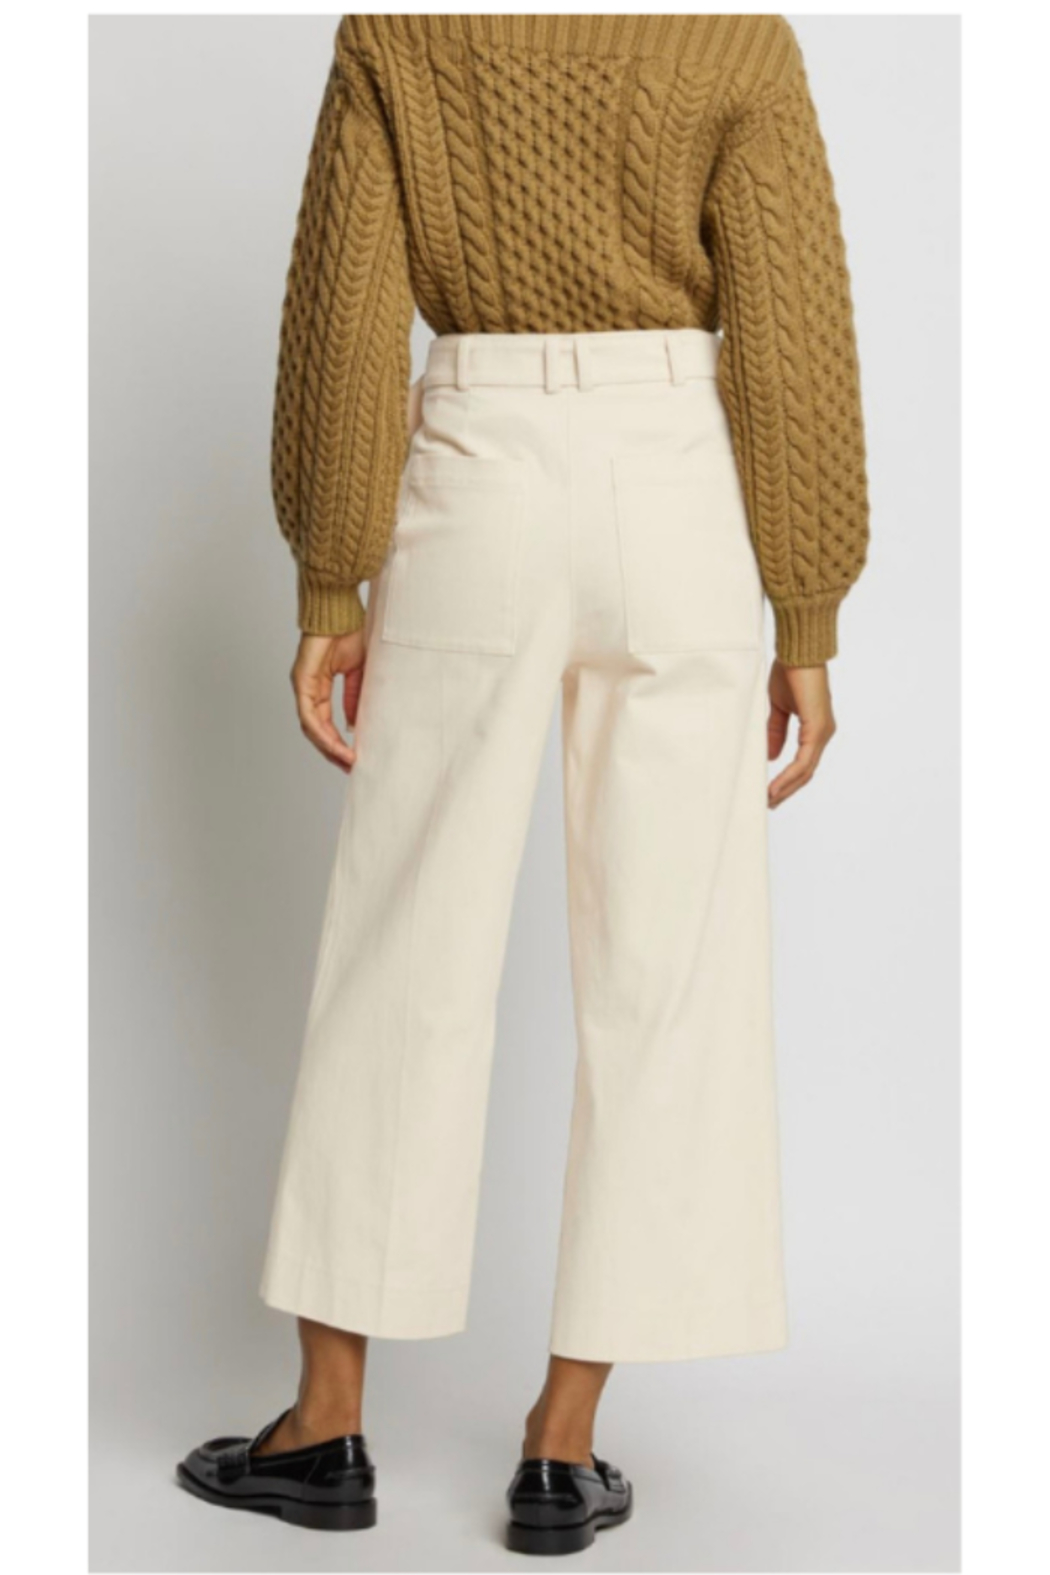 Proenza Schouler WIDE LEG PANTS - Side Cropped Image